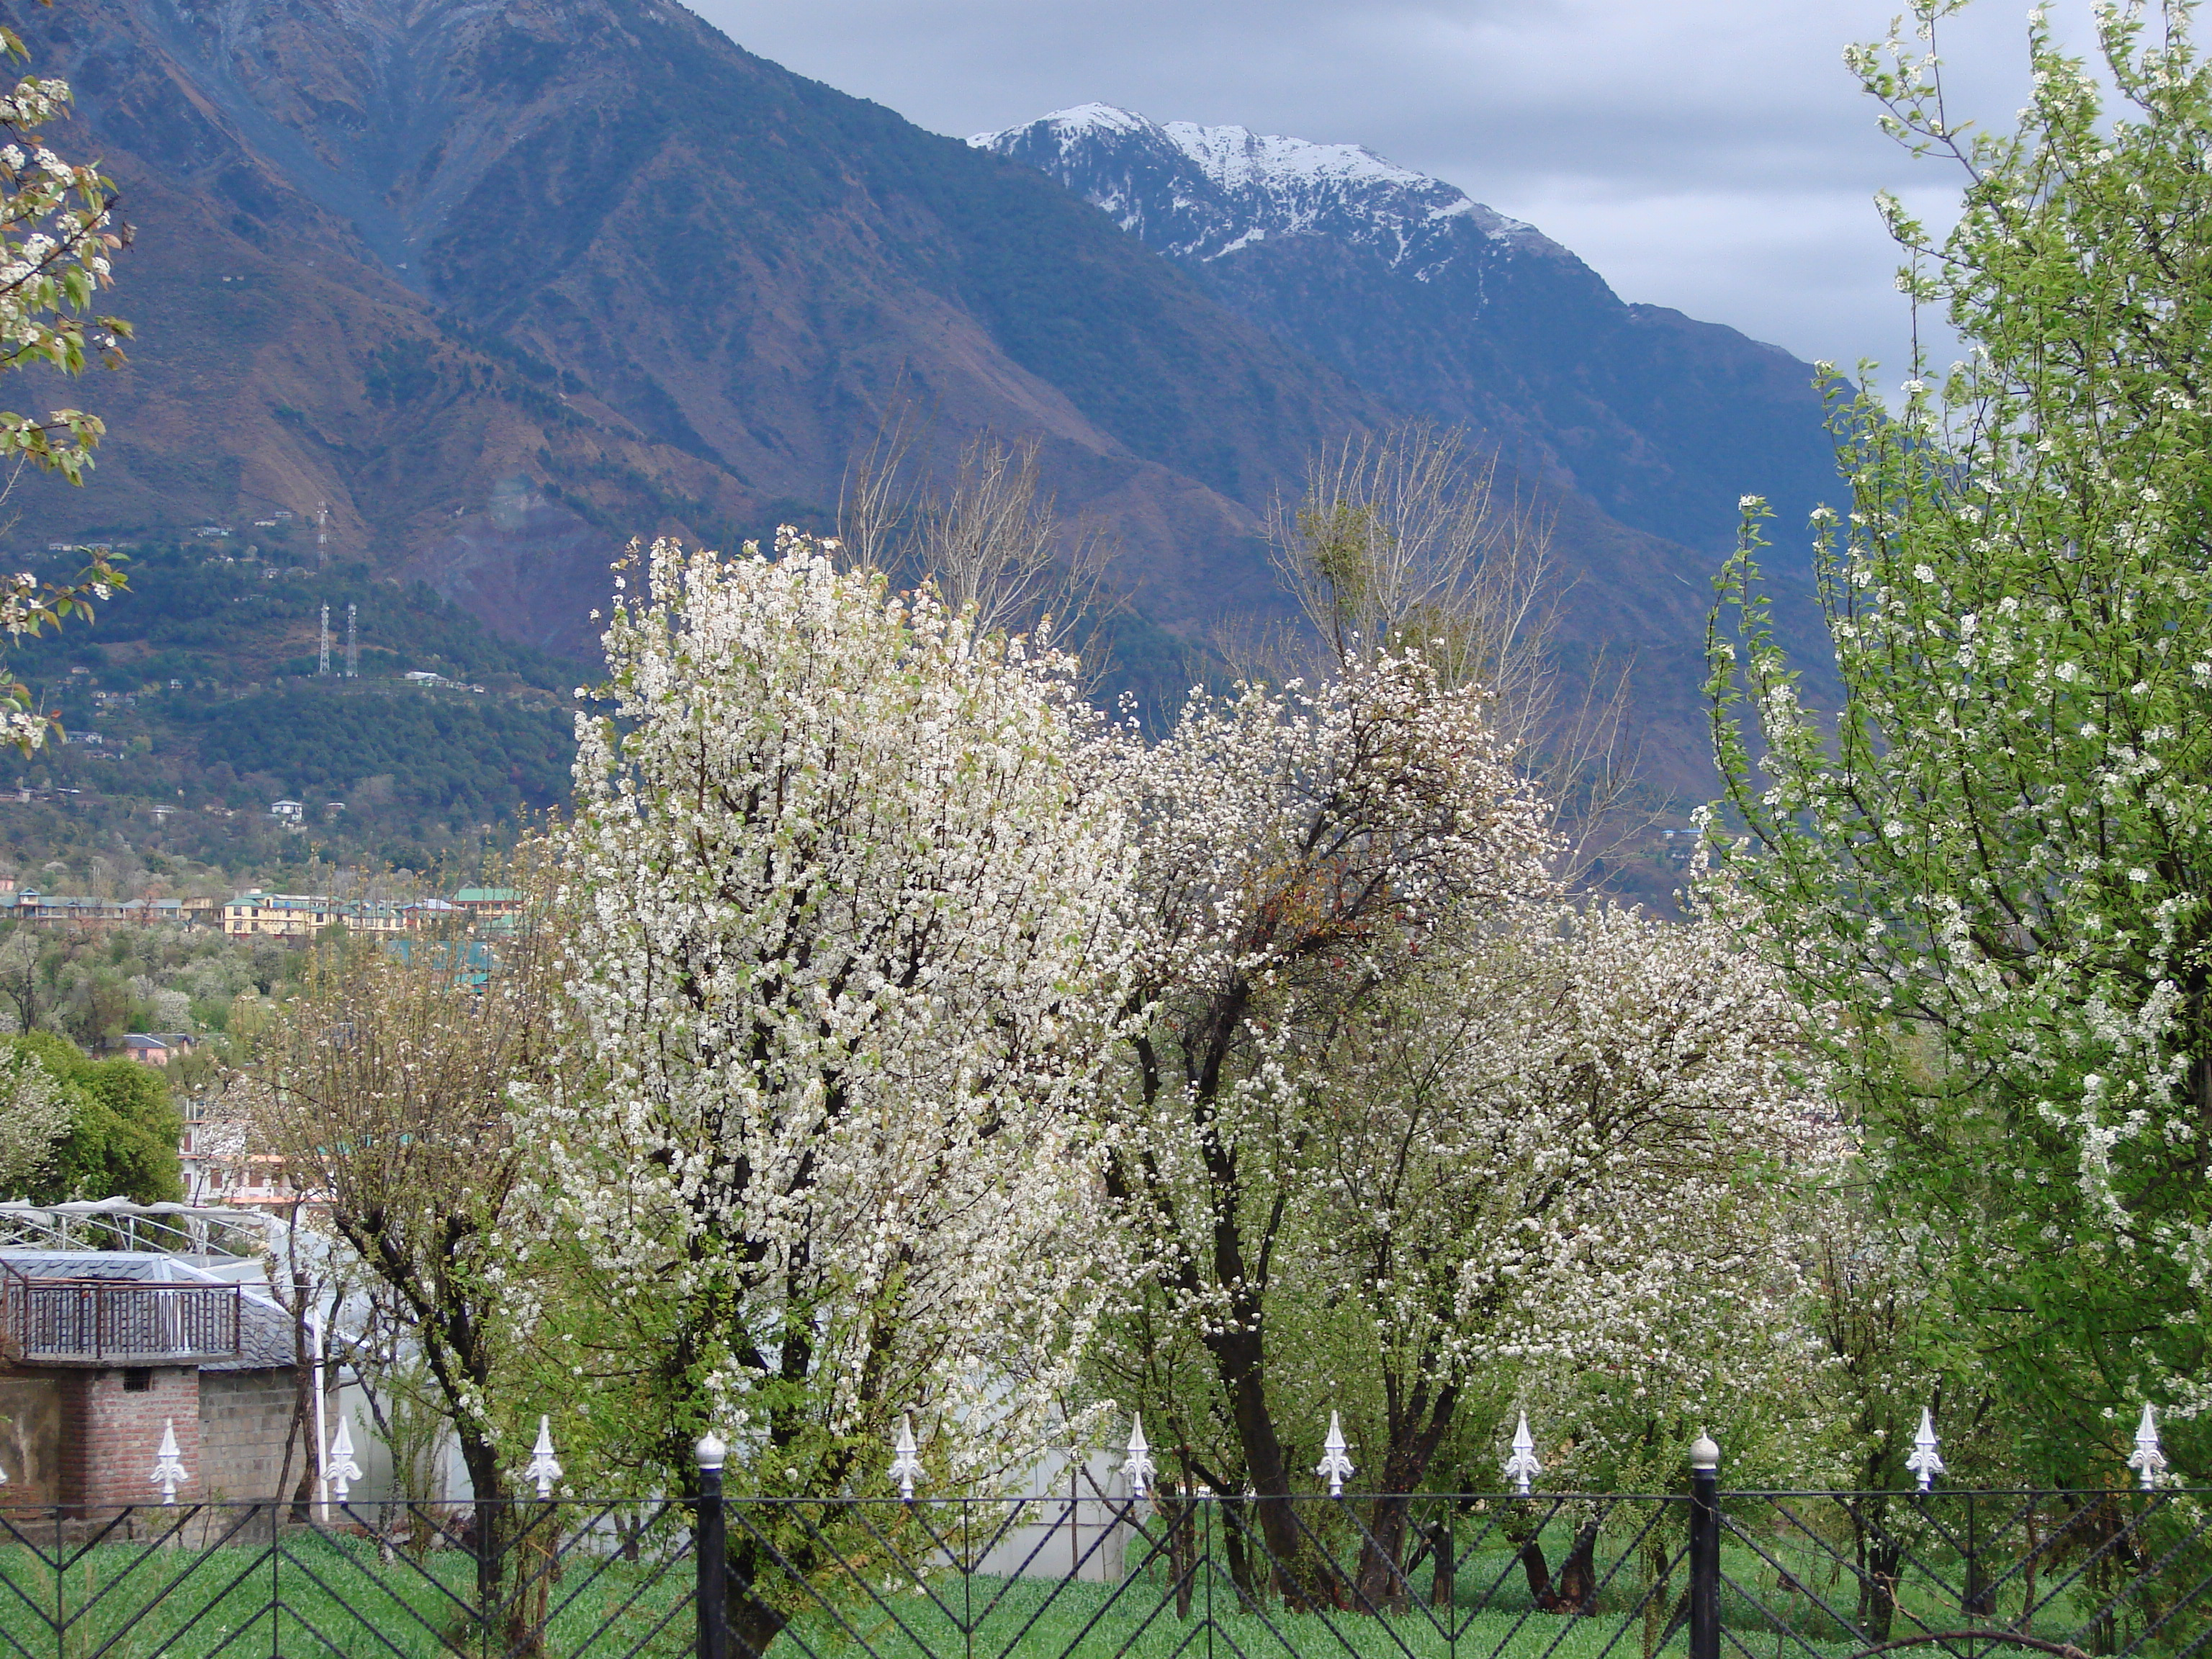 Fileflowering Trees In Spring In Dharamshalahp India Dhauladhar